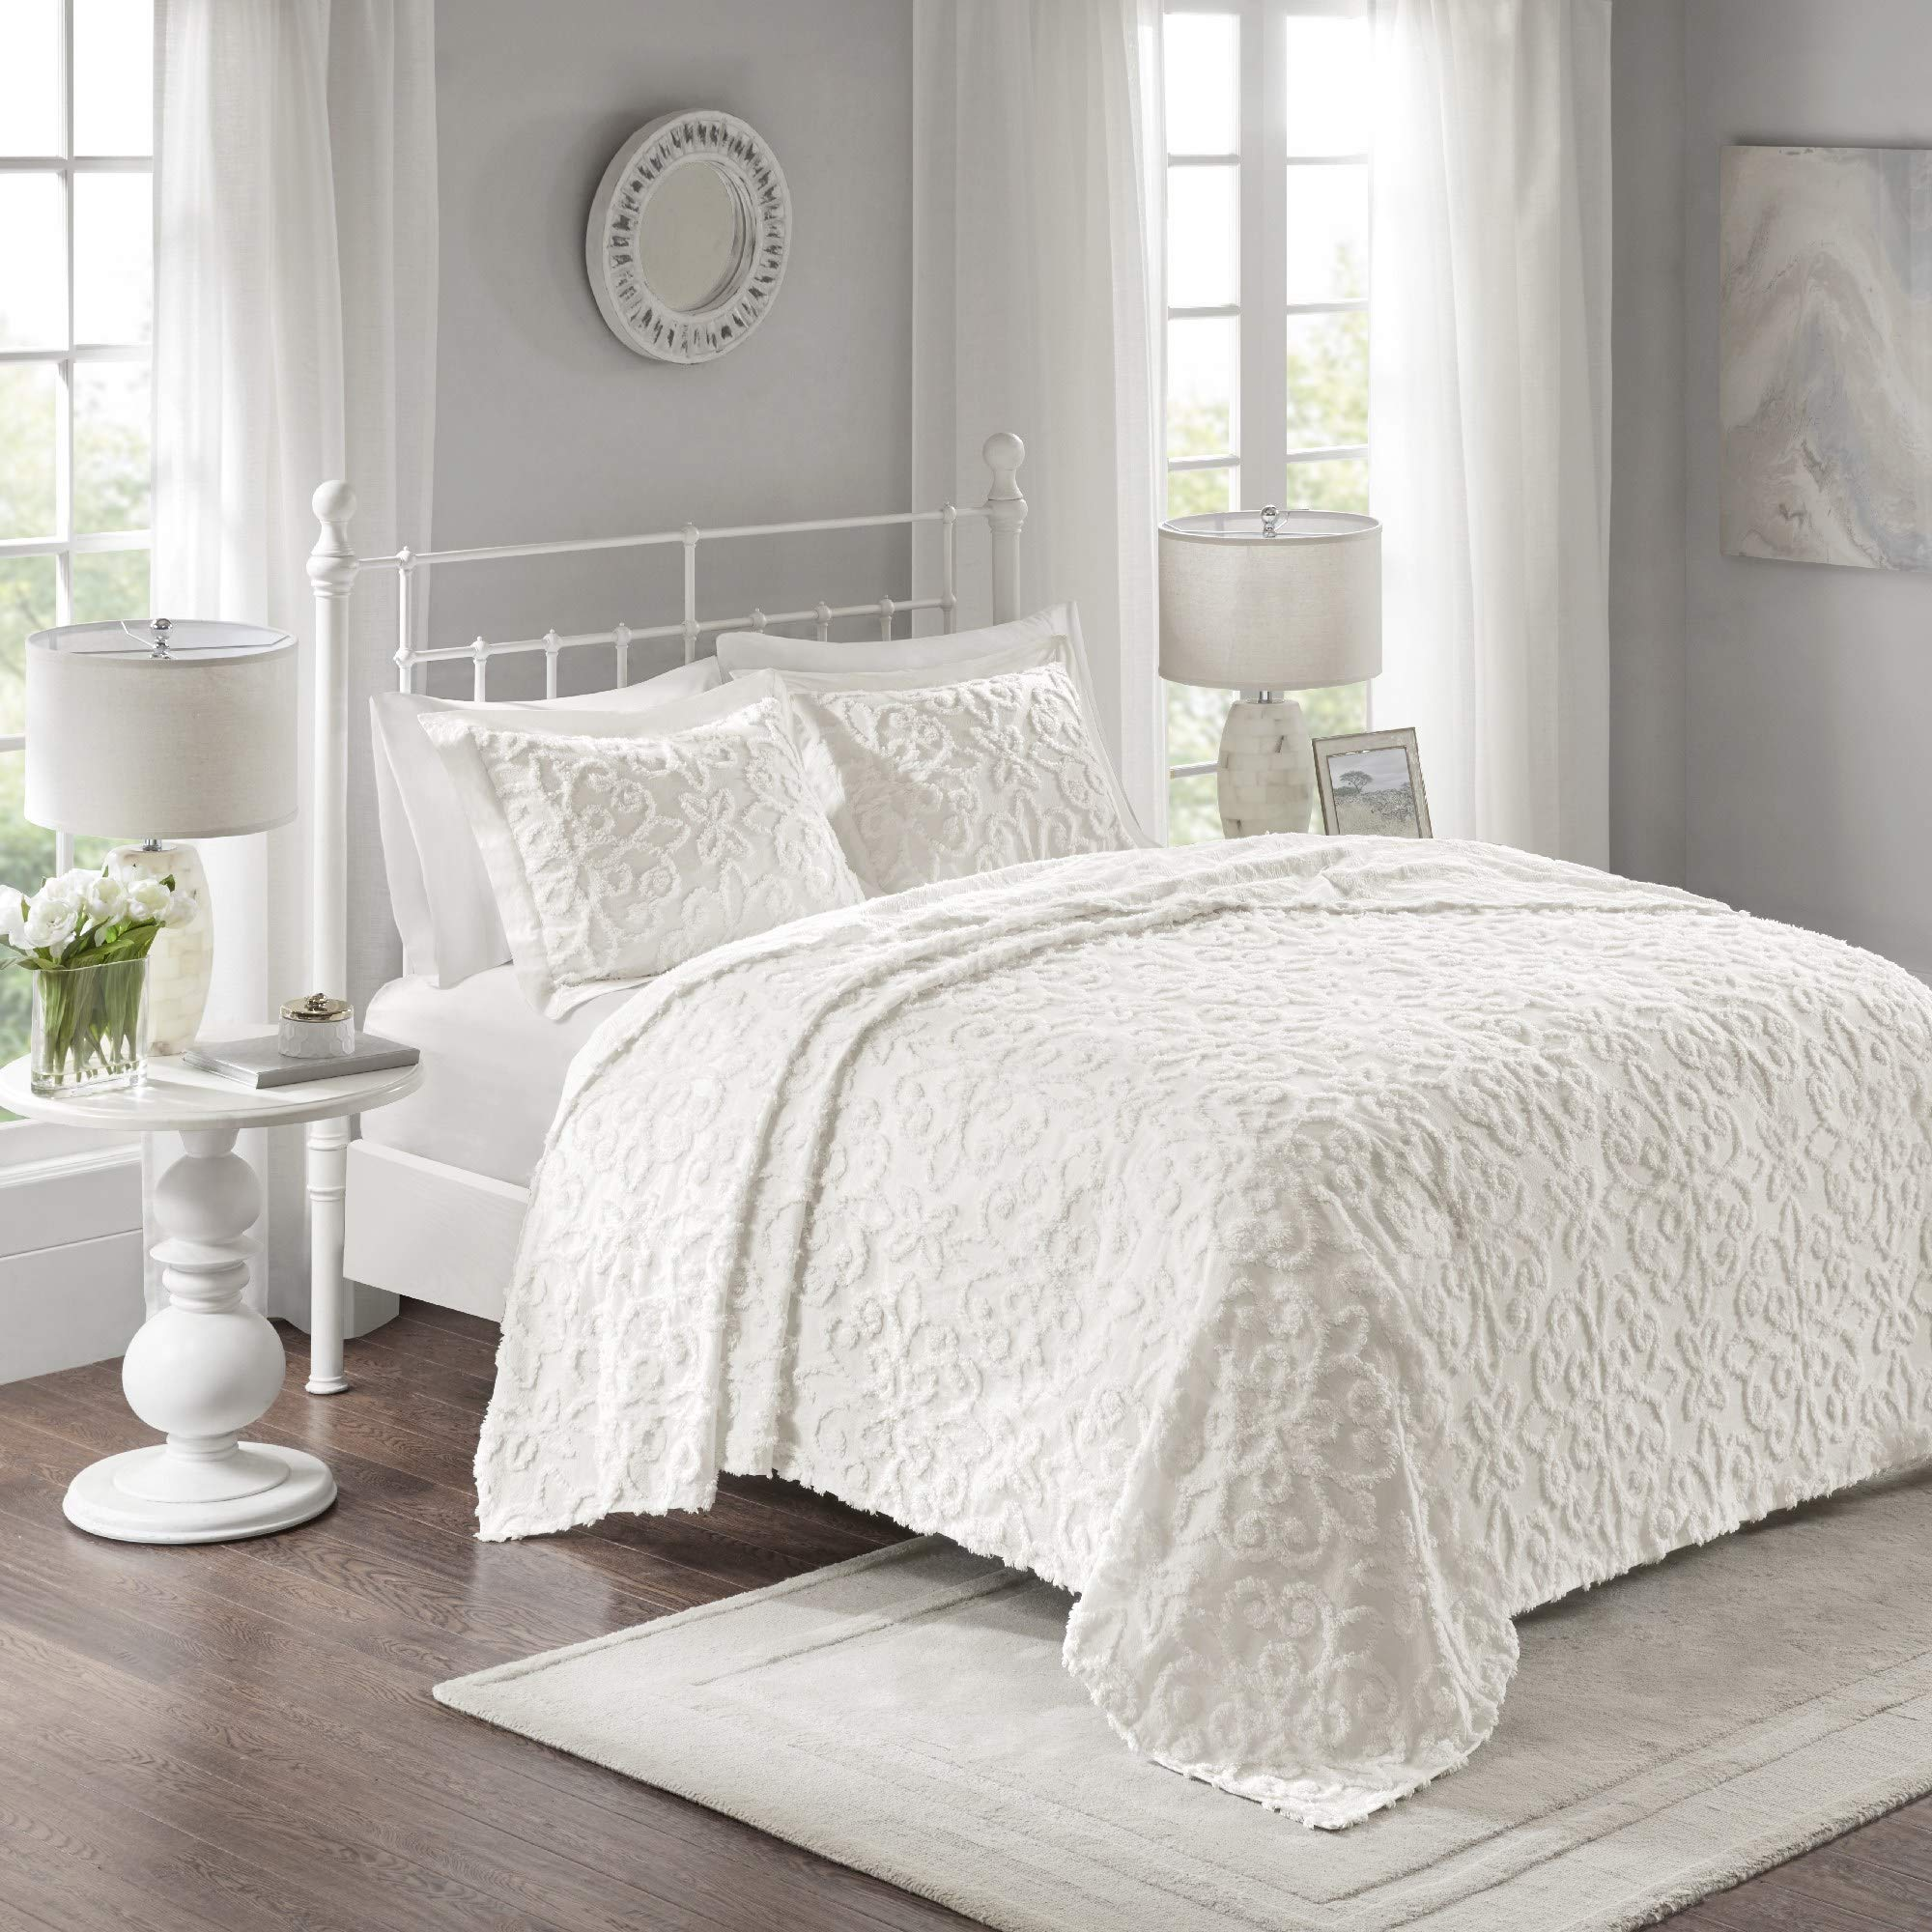 MISC Oversized White Chenille Bedspread King/Cal King 120x118 Vintage Medallion Extra Long Bedding to The Floor Tufted Old Fashioned Traditional Antique Classic Cotton, 3 Piece